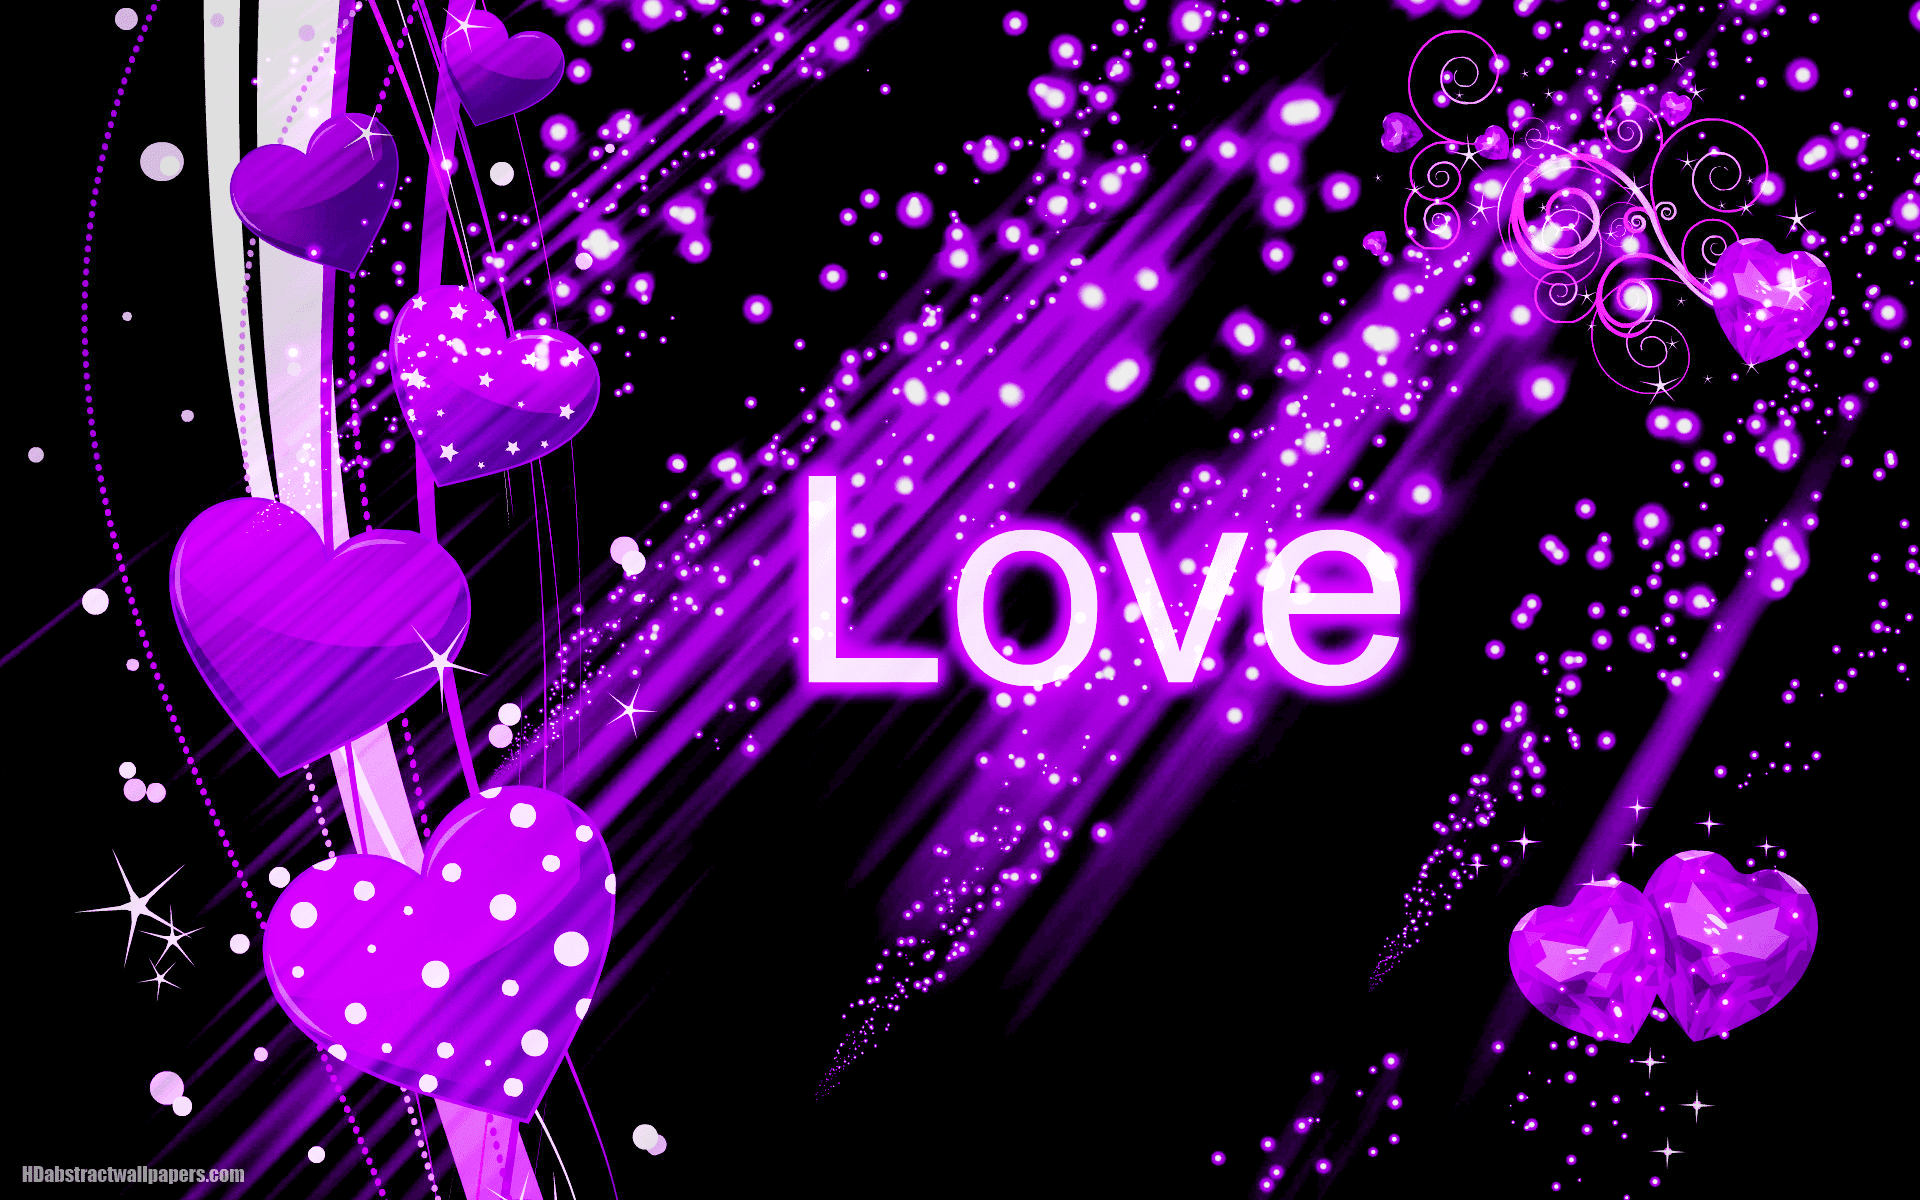 Love Wallpaper Black Background : Black abstract wallpaper with purple love hearts HD ...